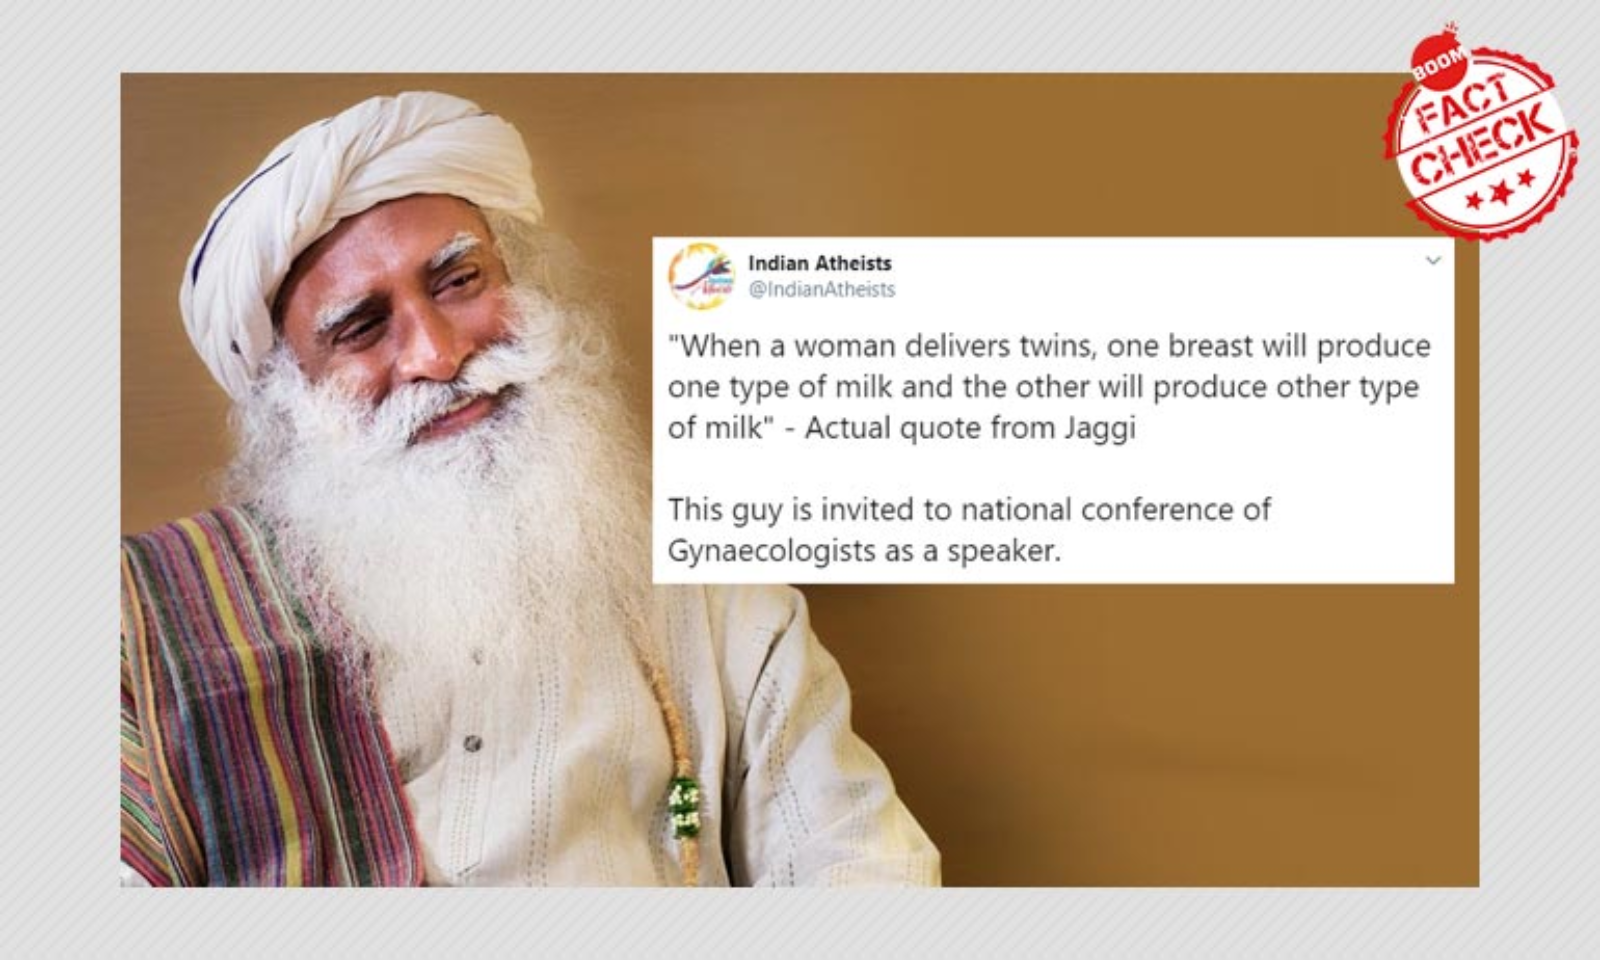 Sadhguru S Claims On Breast Milk Here S What Research Says